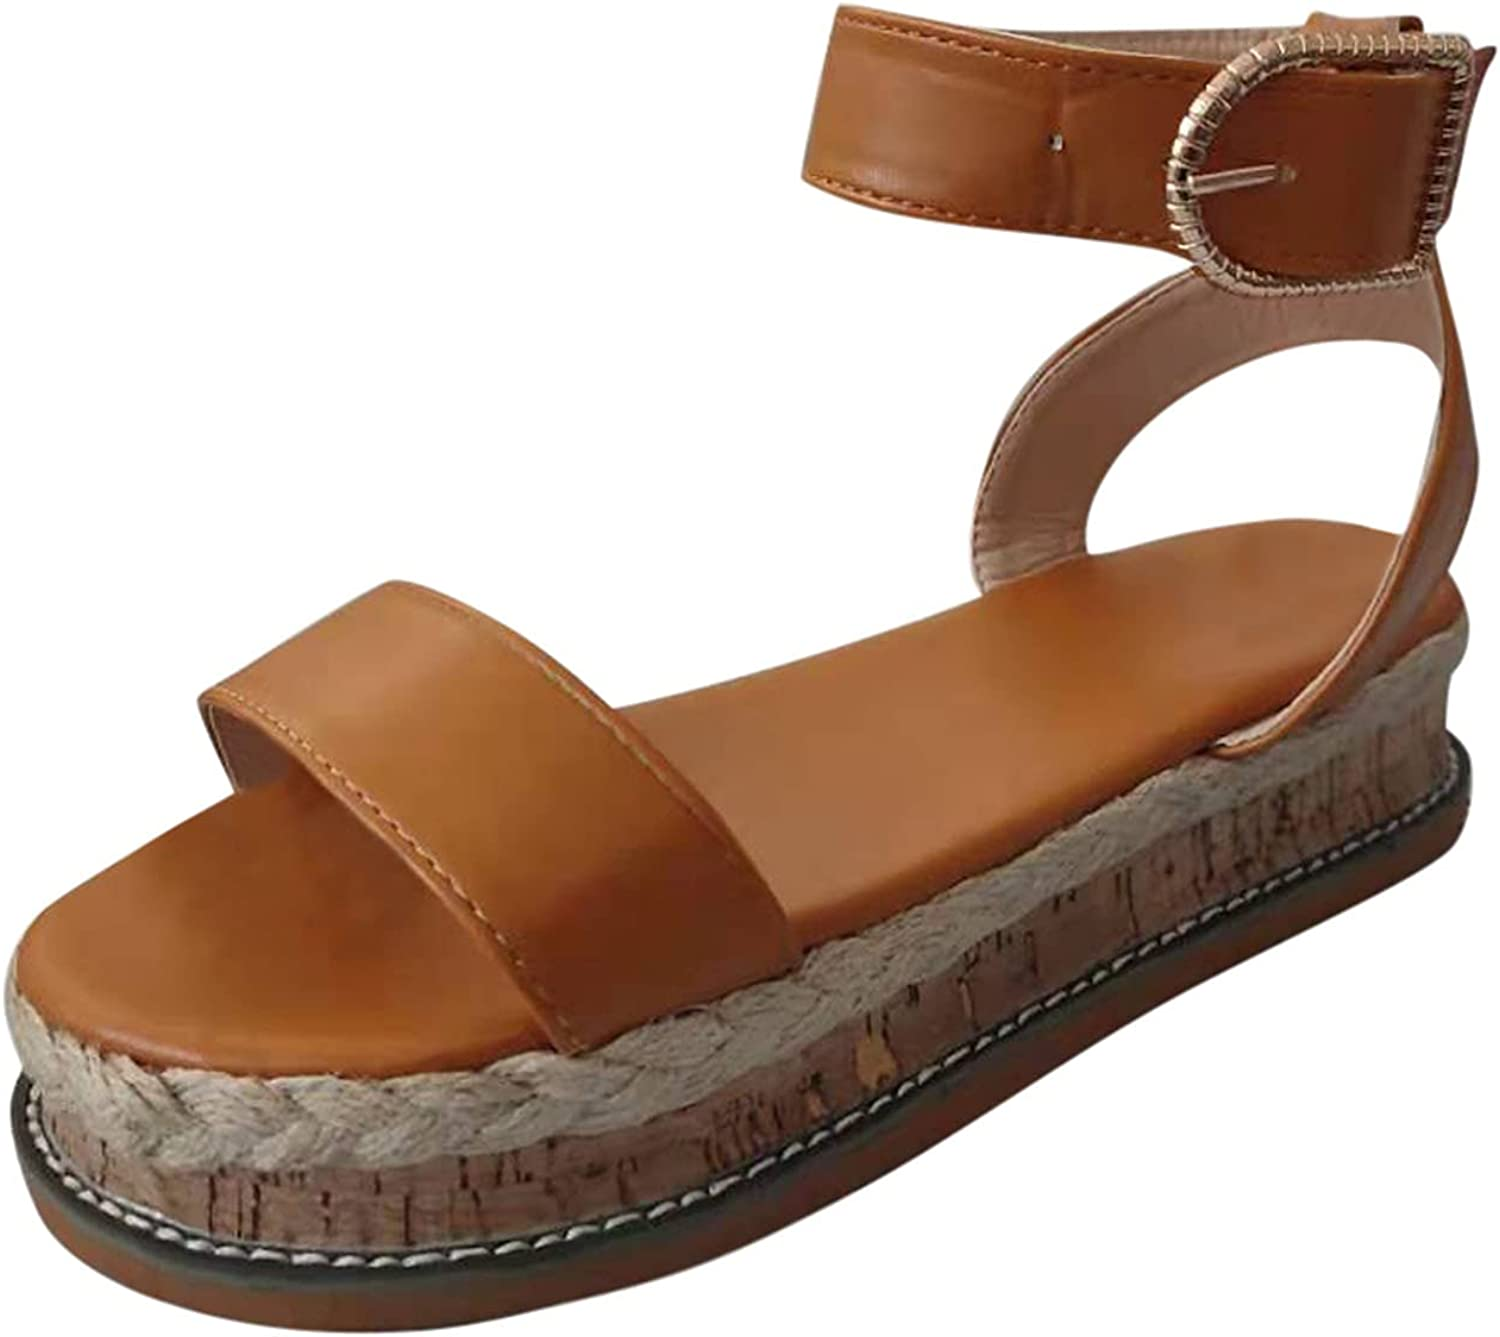 outlet Gyouanime Platform Sandals for Womens Shoes Heeled Casual Jacksonville Mall Summer